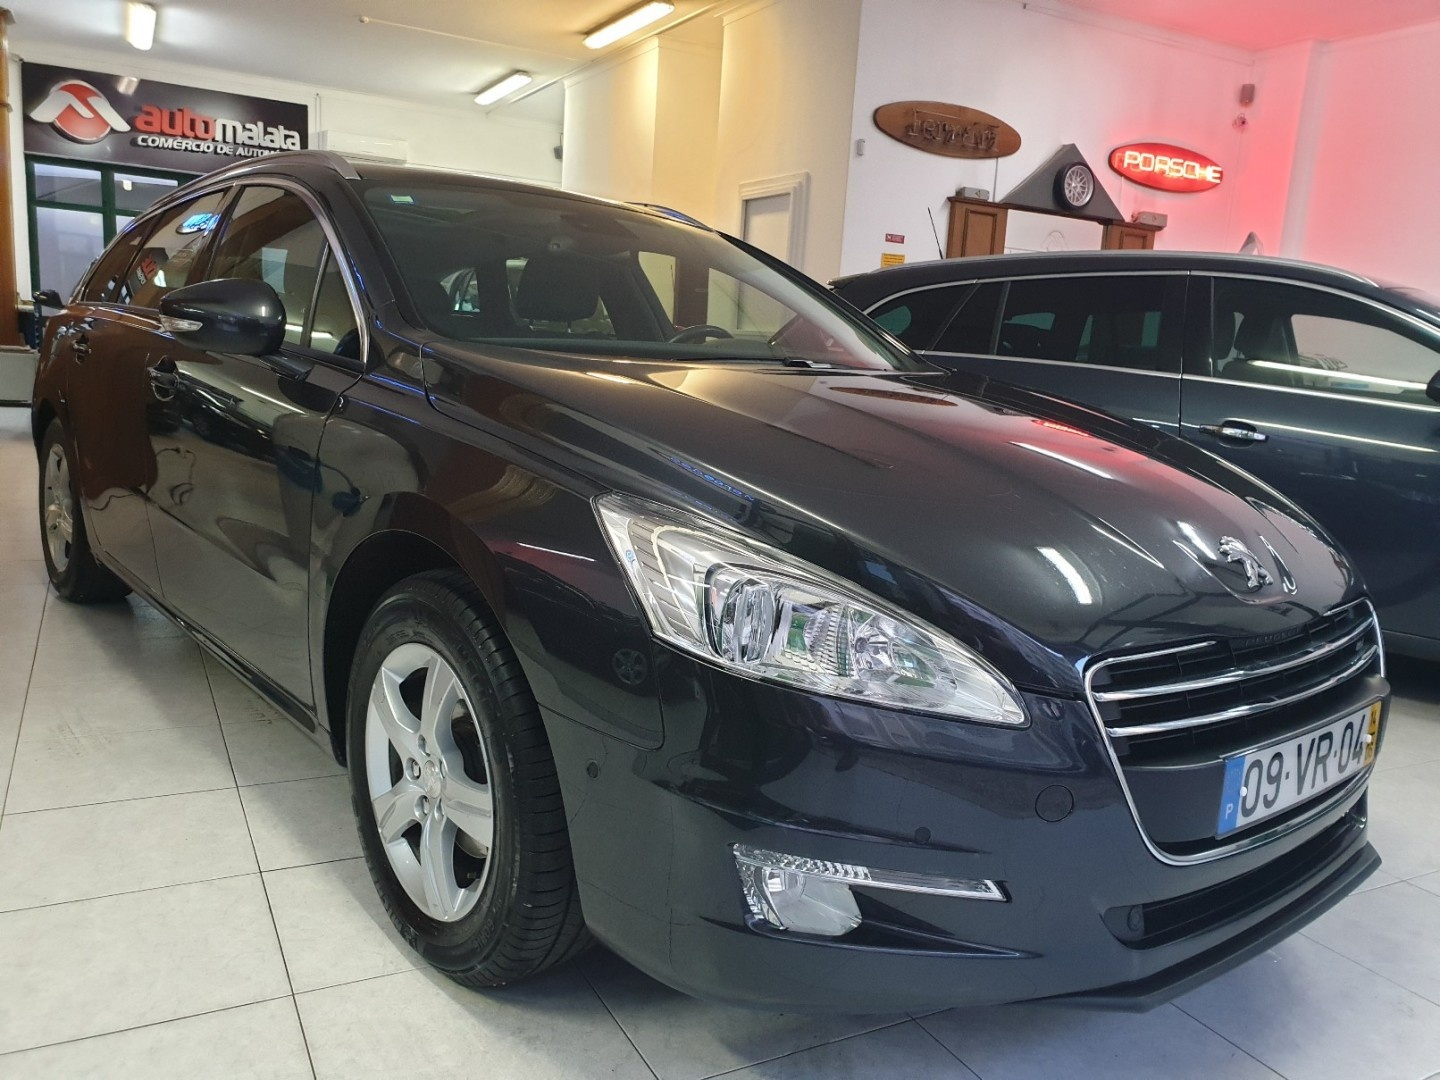 Peugeot 508 1.6 e-HDI Business Line105g